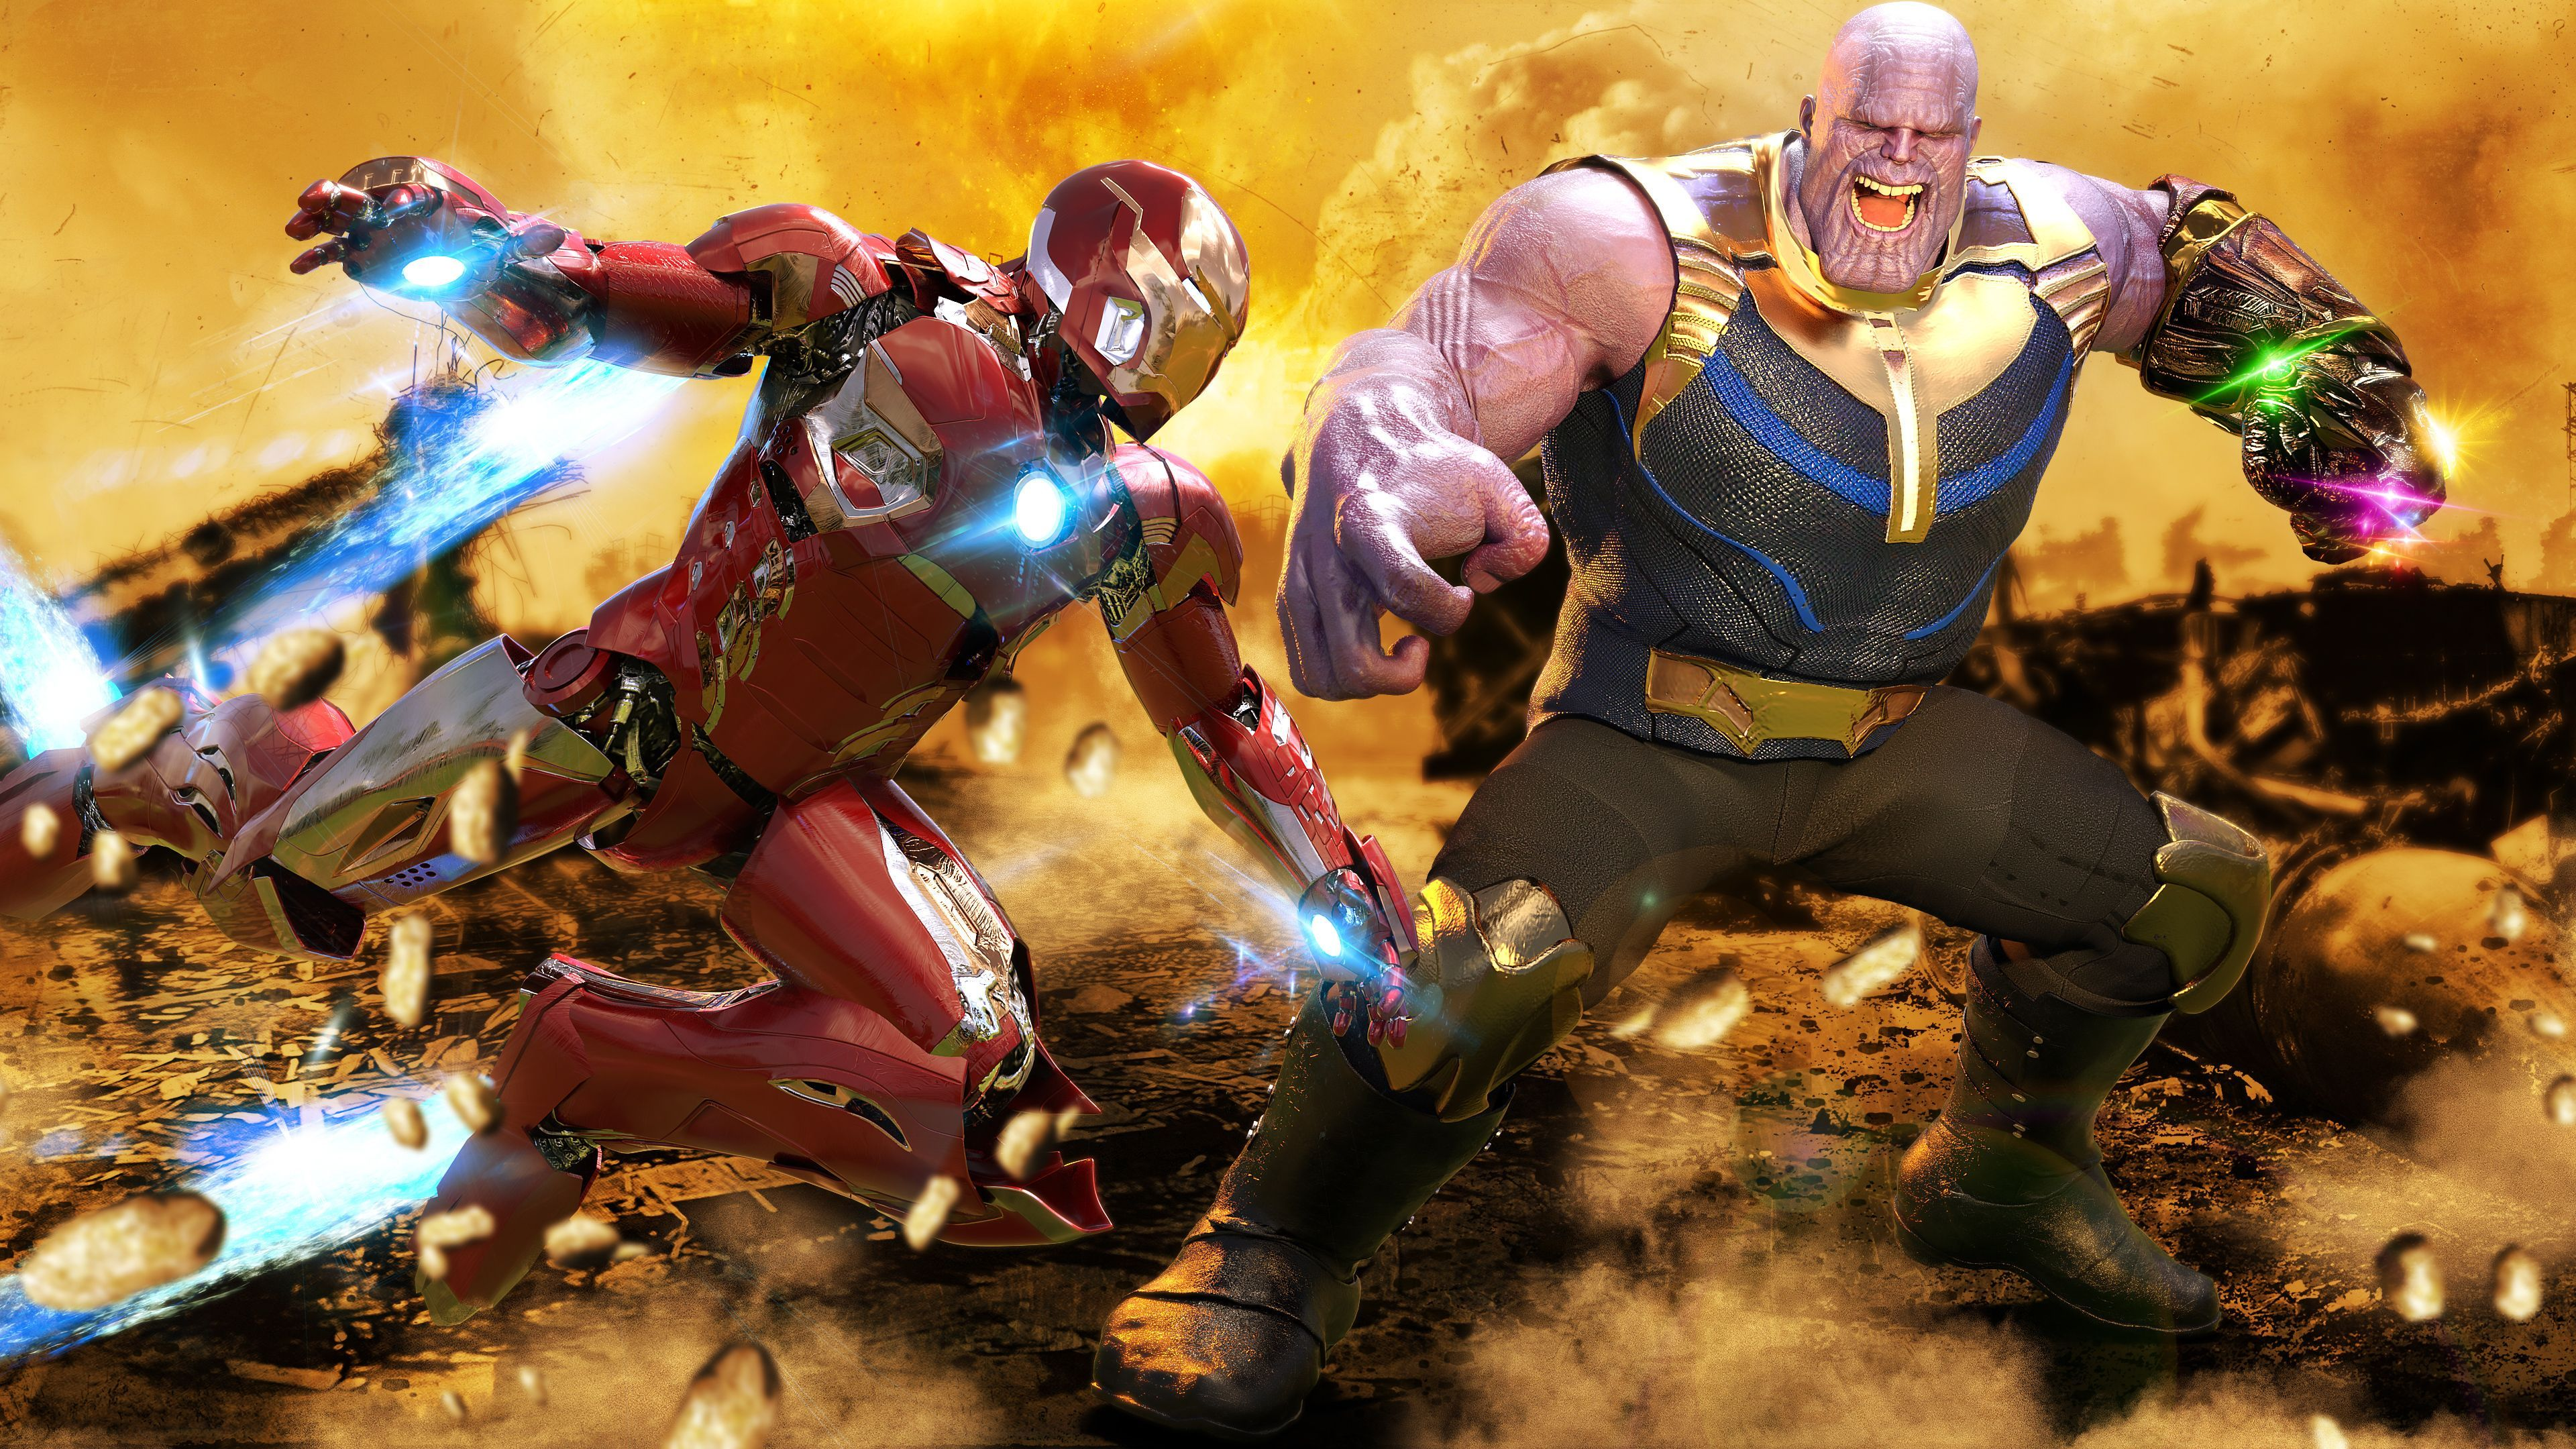 Thanos Vs Iron Man Wallpapers Top Free Thanos Vs Iron Man Backgrounds Wallpaperaccess